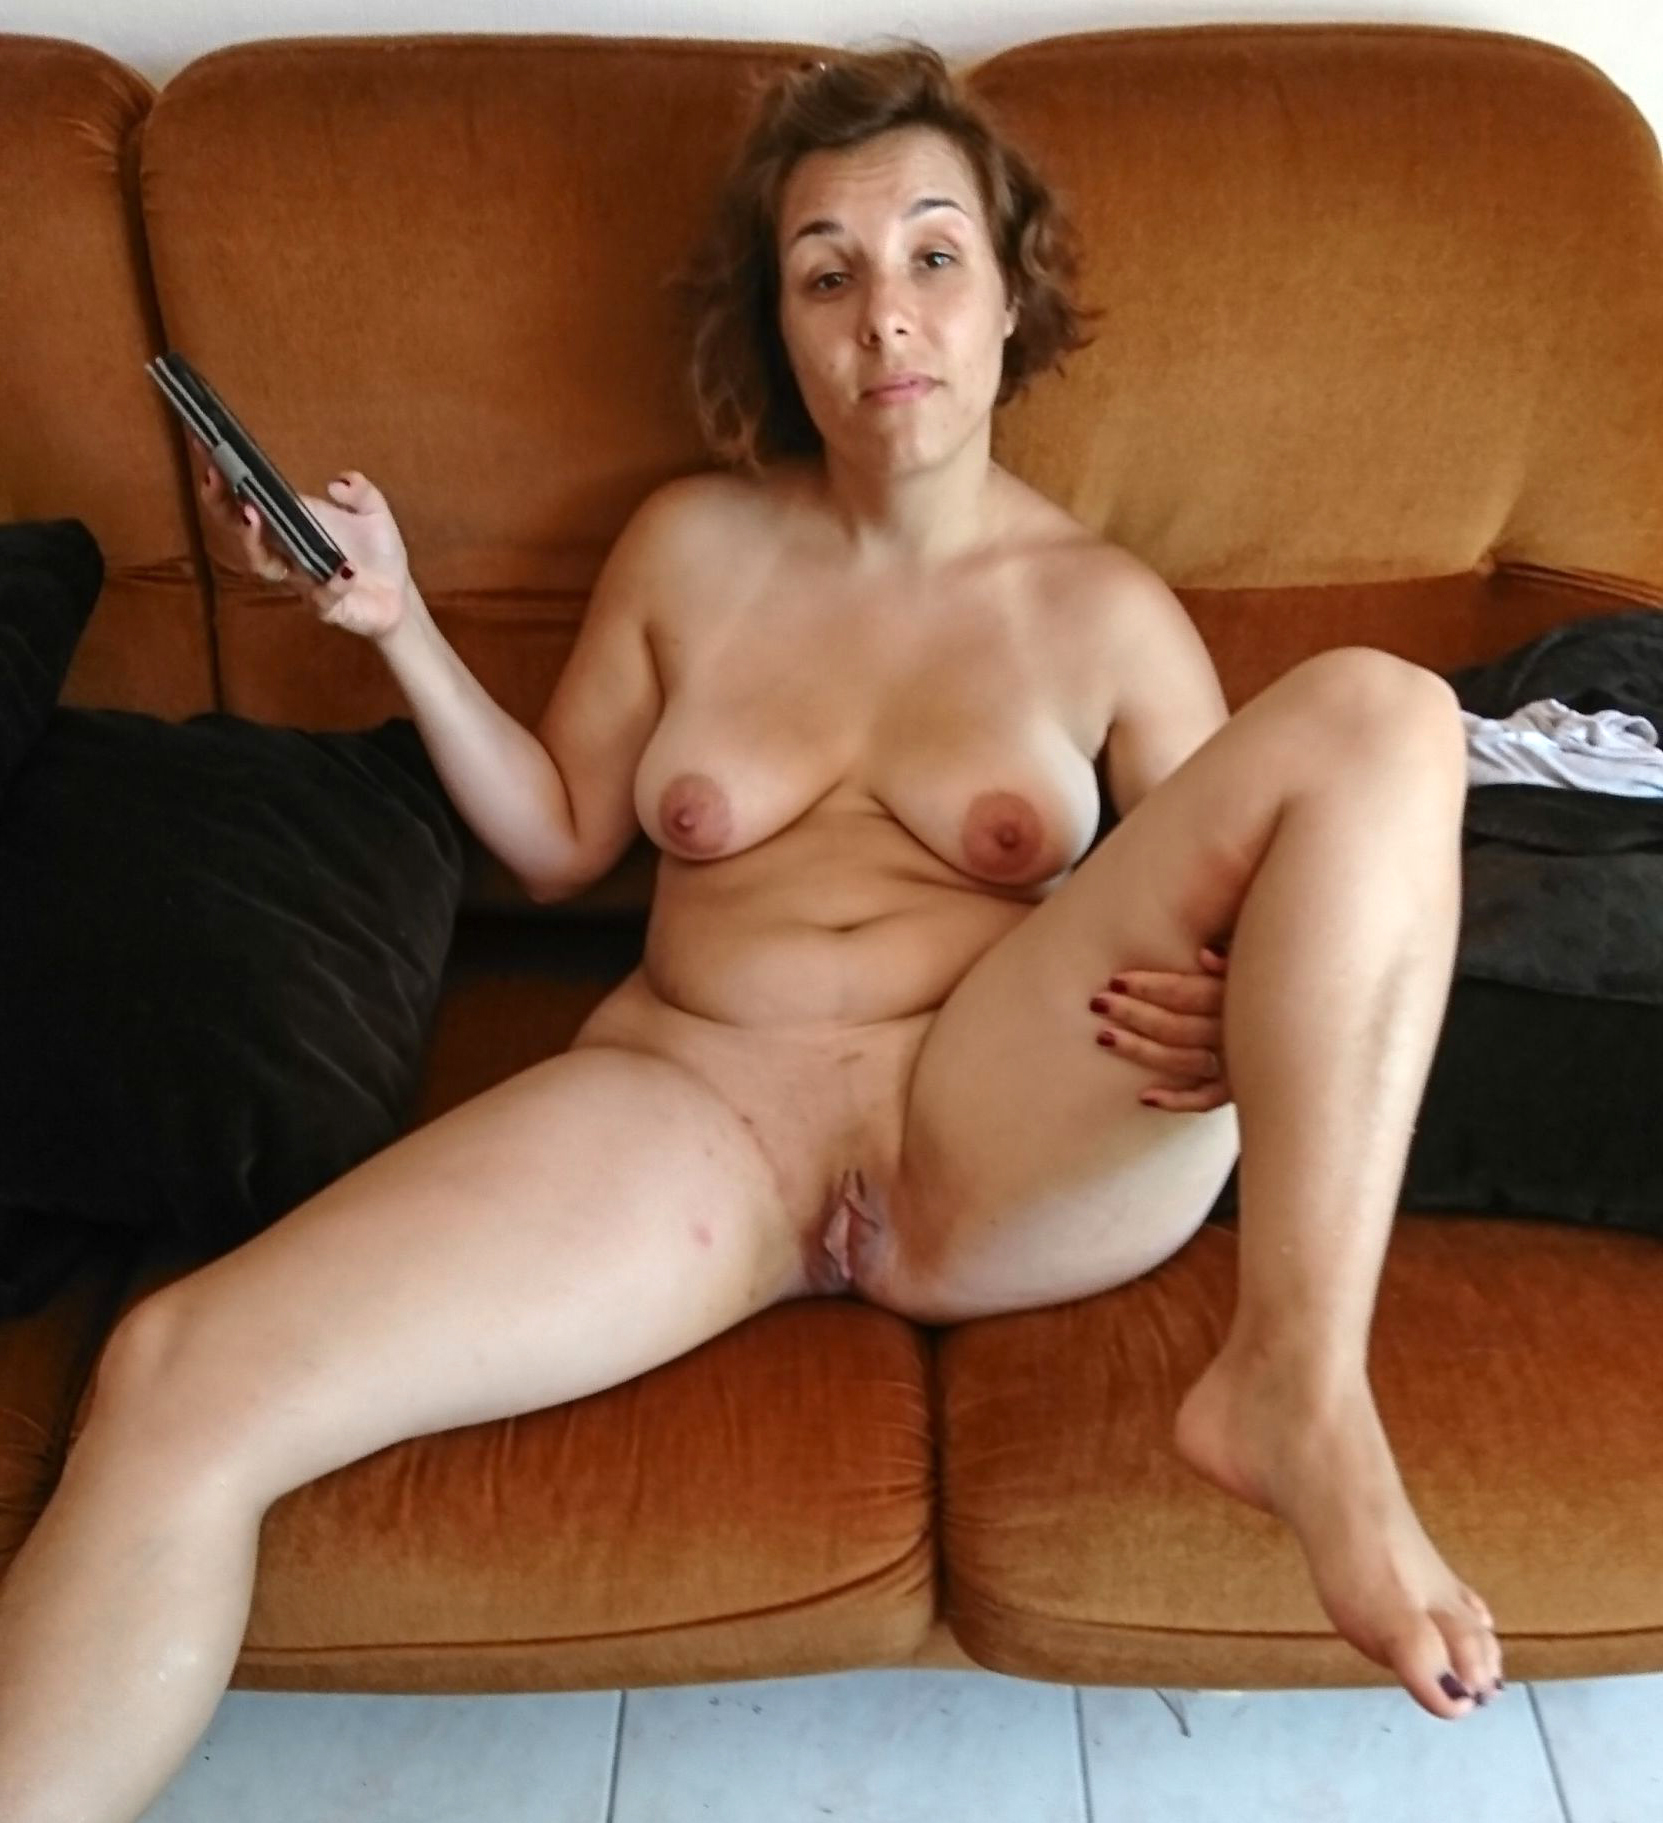 Was naked home mature at of women pics commit